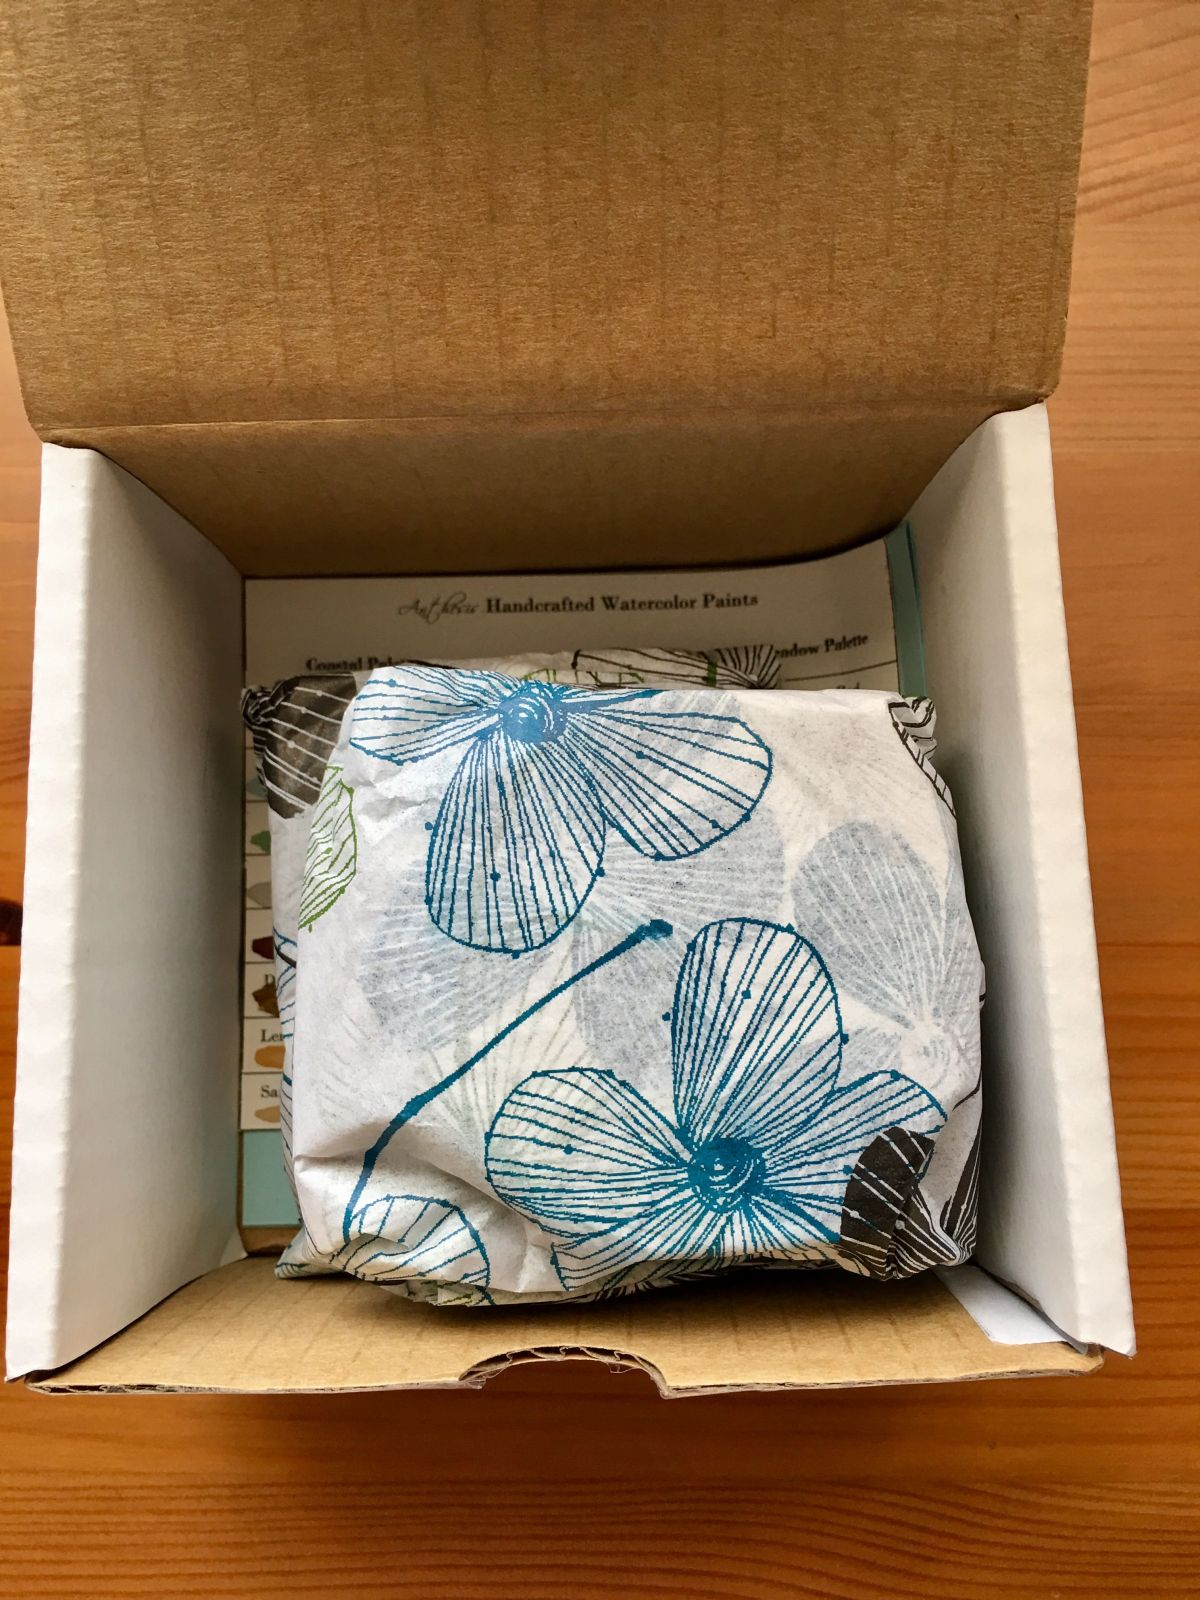 Anthesis Arts handcrafted watercolors unboxing